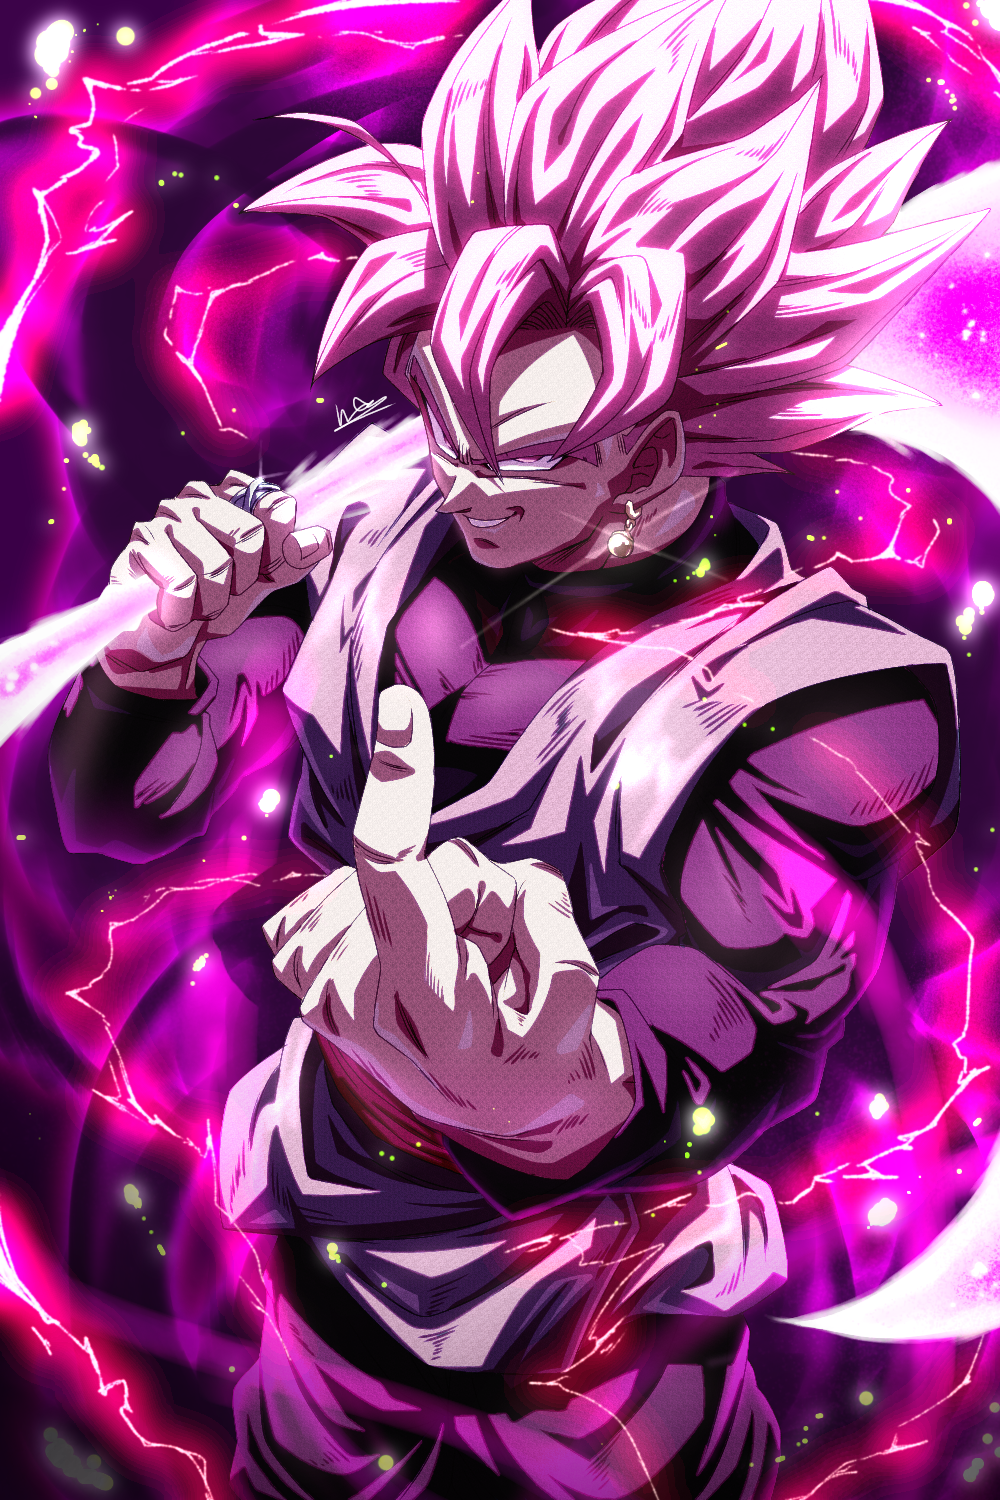 1boy commentary_request cowboy_shot dougi dragon_ball dragon_ball_super earrings electricity evil_grin evil_smile fingernails from_above glint goku_black grin hand_up highres holding holding_scythe holding_weapon ibispaint_(medium) index_finger_raised jewelry light_particles long_sleeves looking_at_viewer male_focus muscular muscular_male over_shoulder pink_eyes pink_hair pink_theme potara_earrings ring sash scythe sekitsuki_hayato signature single_earring smile solo spiky_hair super_saiyan super_saiyan_rose weapon weapon_over_shoulder